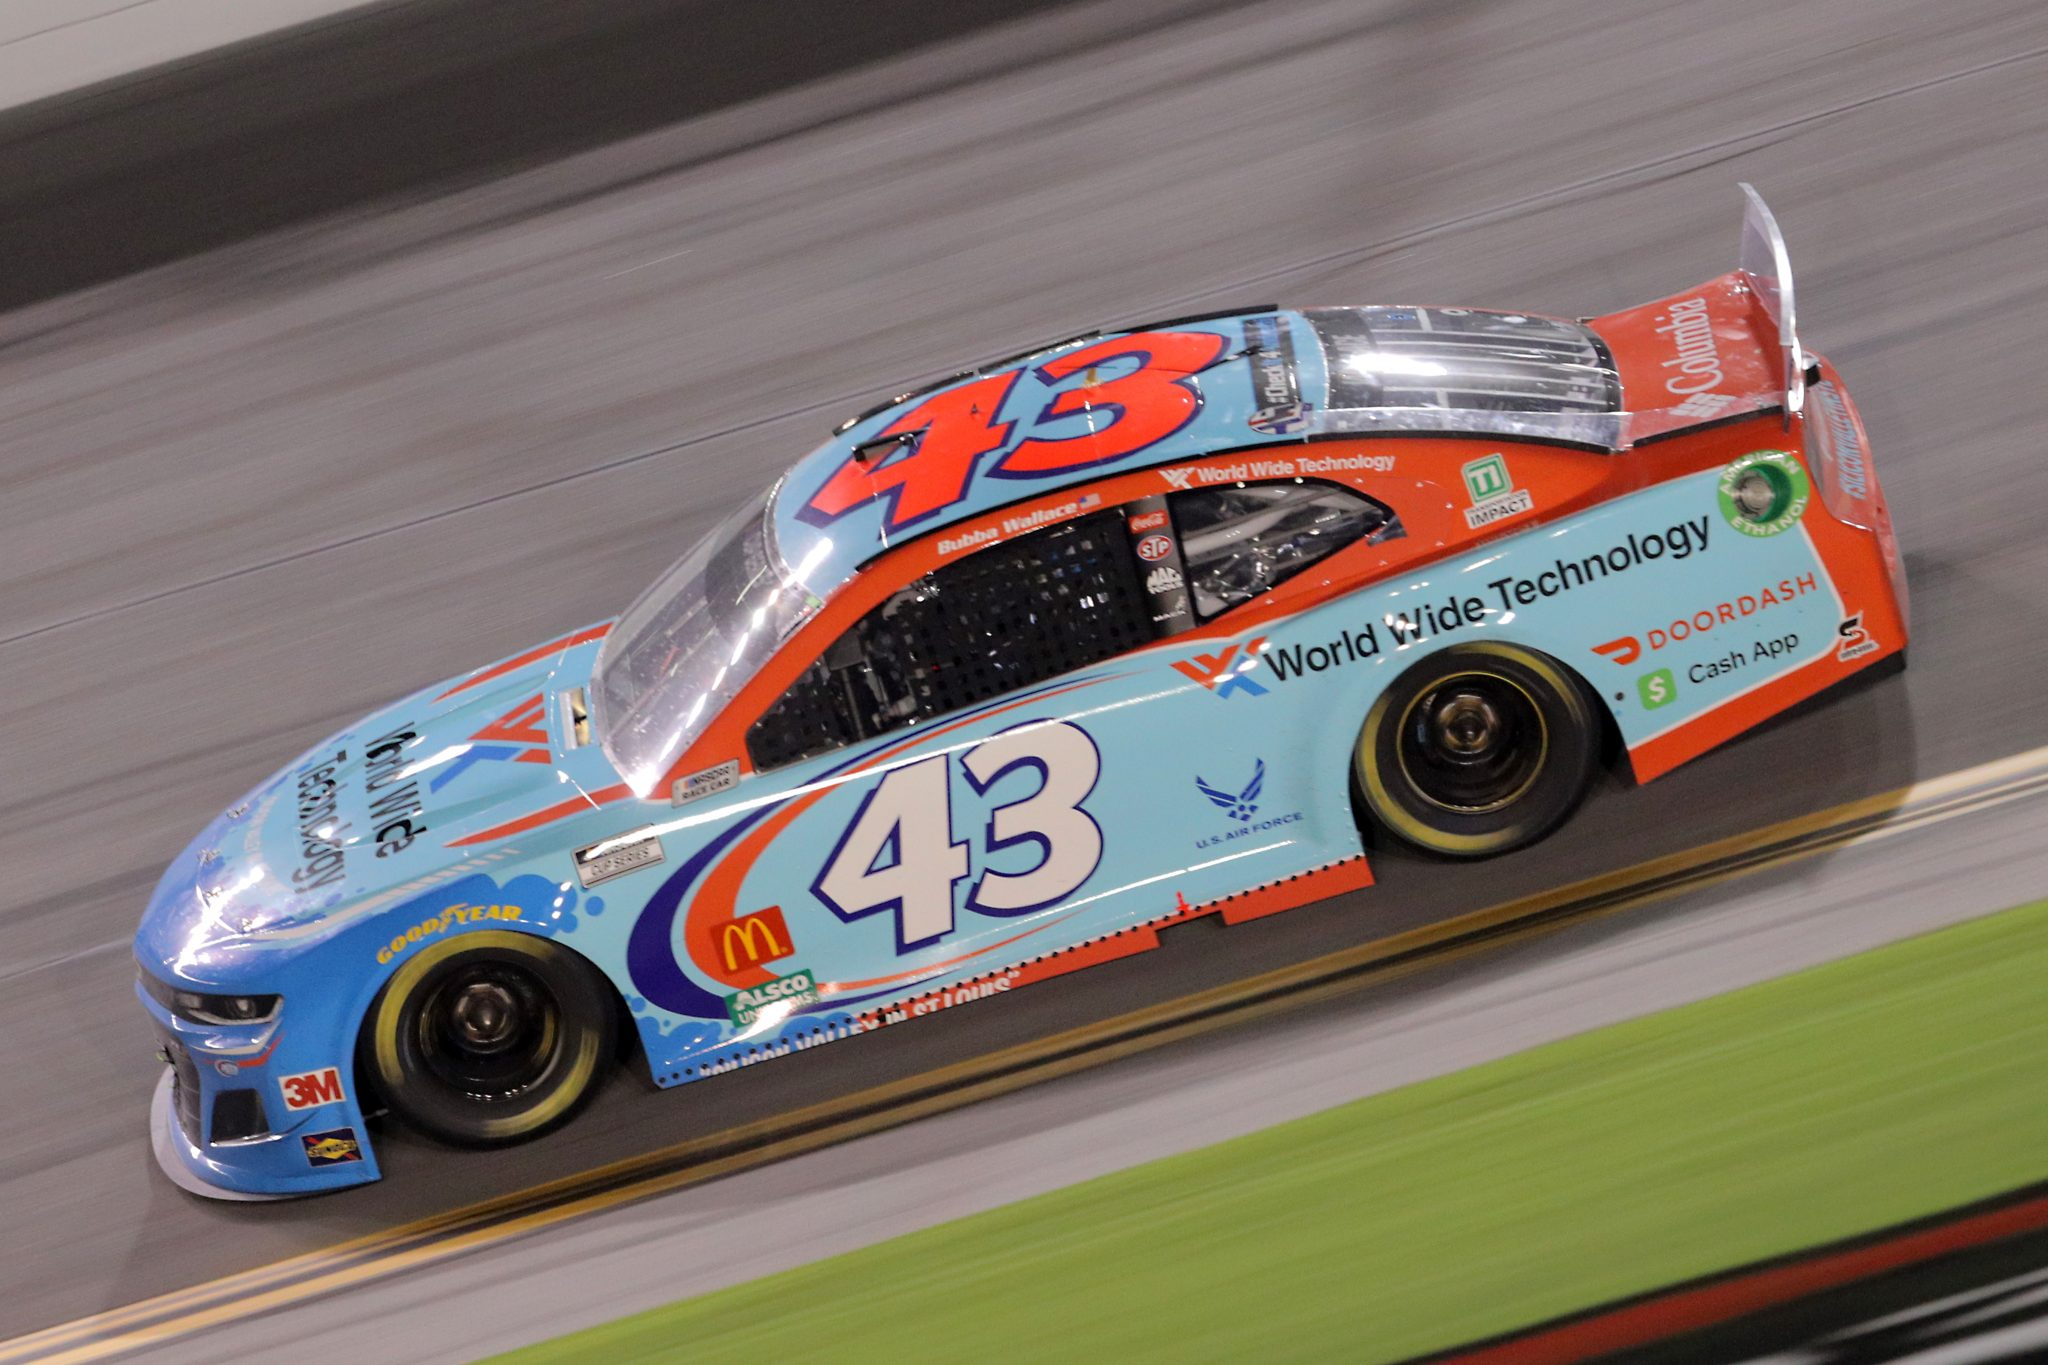 DAYTONA BEACH, FLORIDA - AUGUST 29: Bubba Wallace, driver of the #43 World Wide Technology Chevrolet, races during the NASCAR Cup Series Coke Zero Sugar 400 at Daytona International Speedway on August 29, 2020 in Daytona Beach, Florida. (Photo by Chris Graythen/Getty Images) | Getty Images